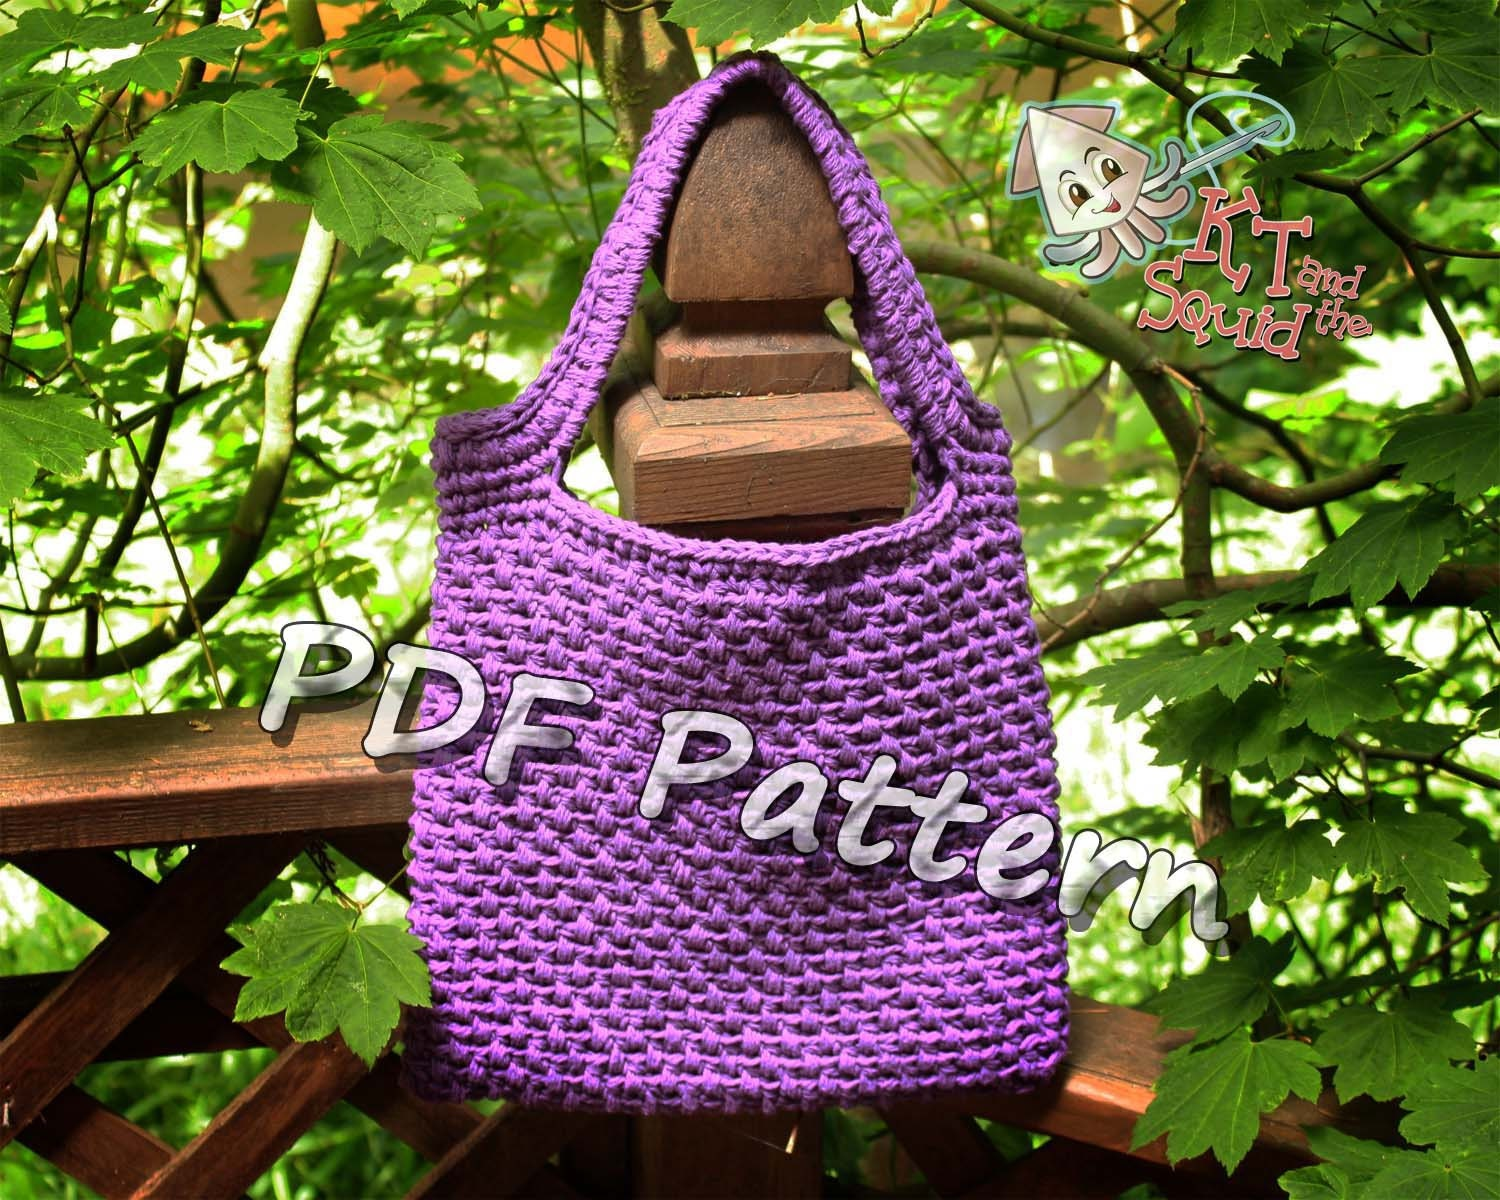 Beginner Crochet Tote Bag Pattern : Crochet bag pattern, Crochet tote pattern, purse pattern, textured ...